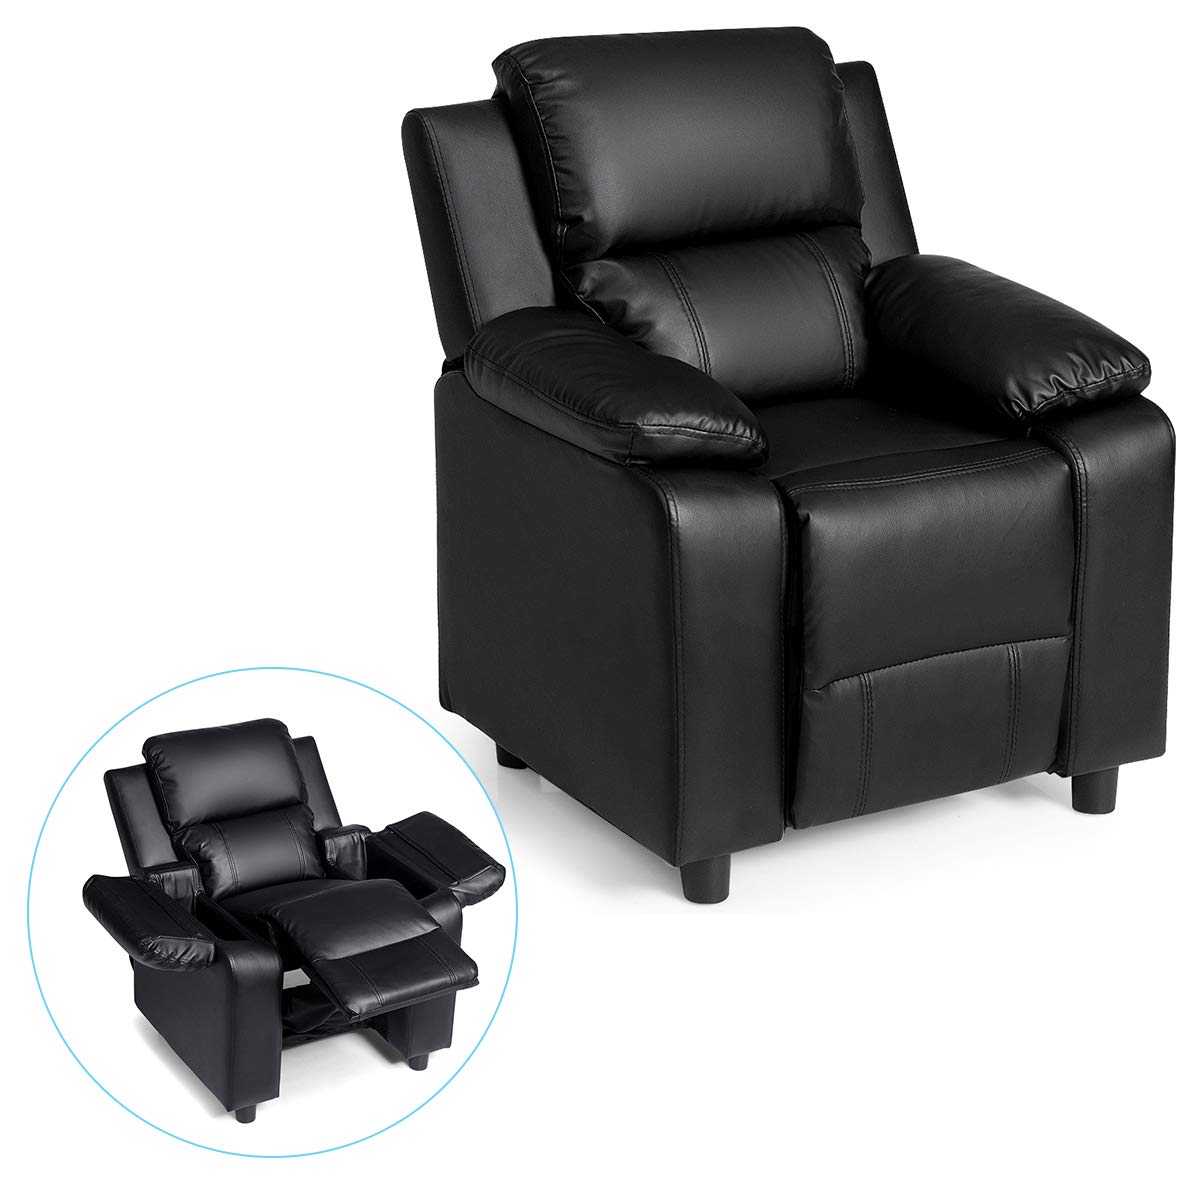 Costzon Kids Sofa Recliner, Children PU Leather Armchair